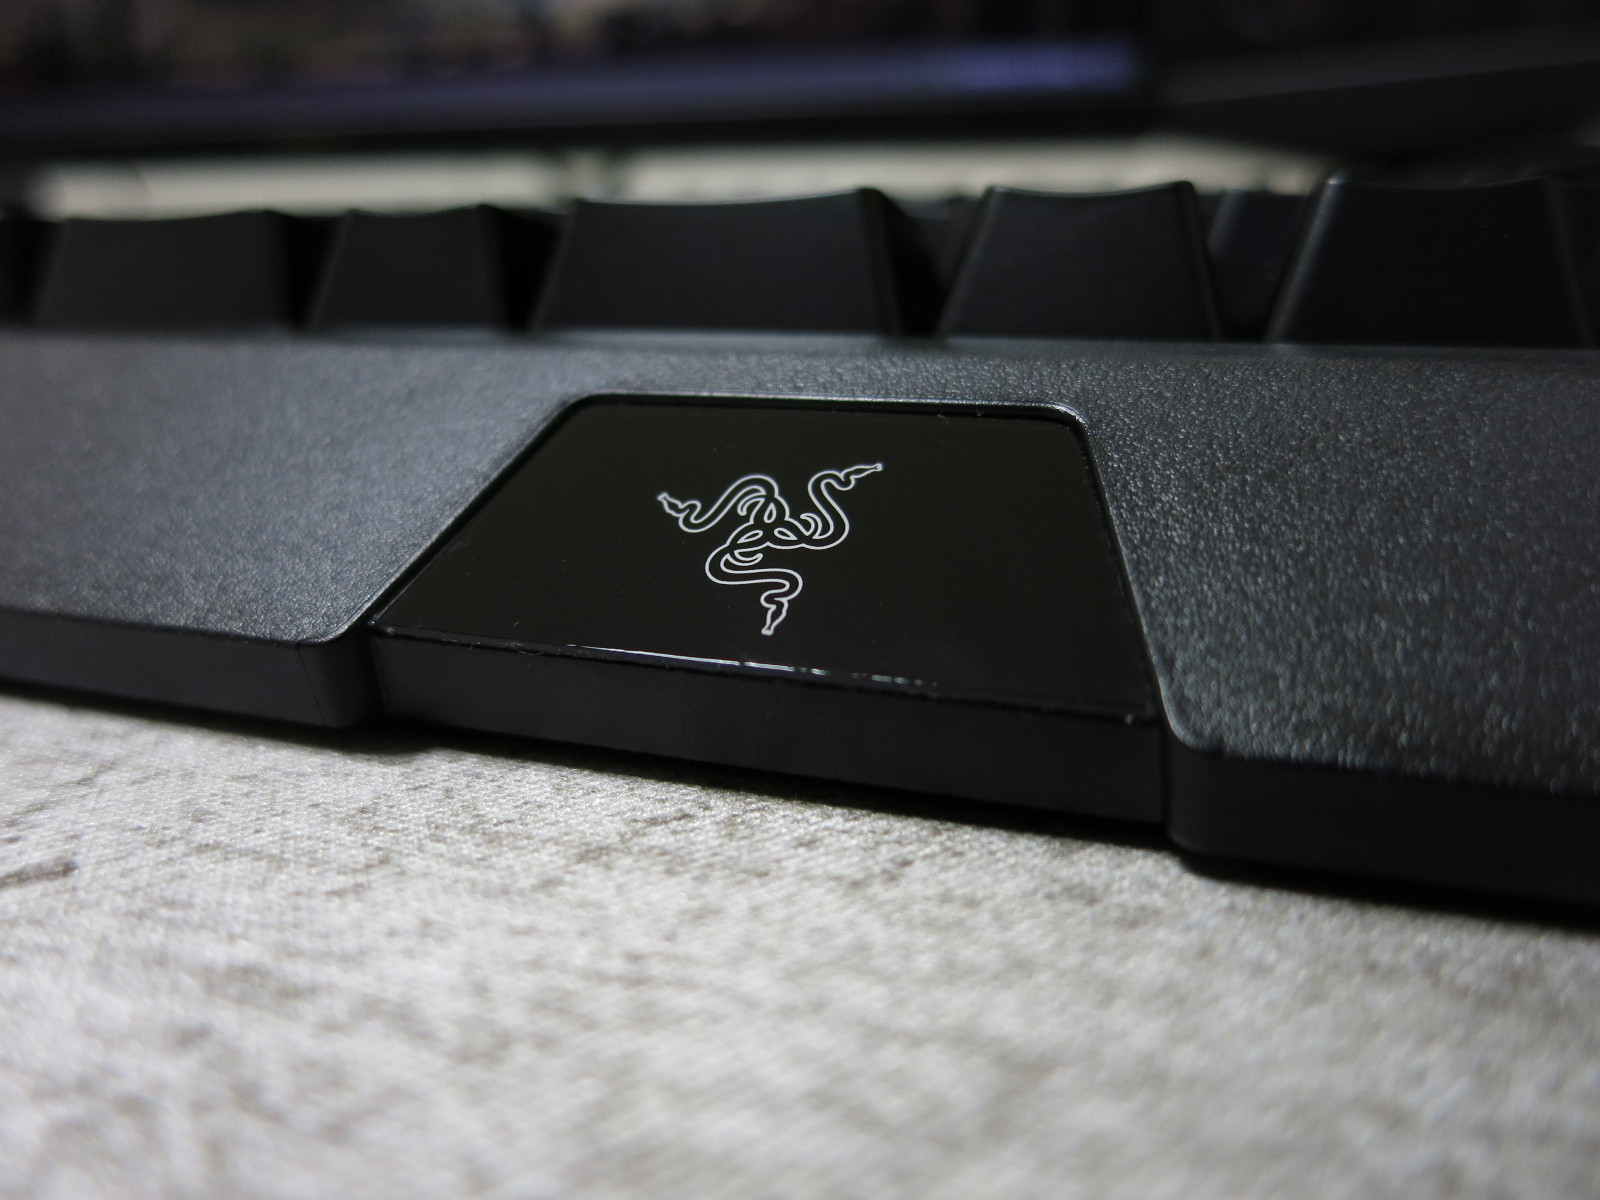 Razer_BlackWidow_2019_23.jpg